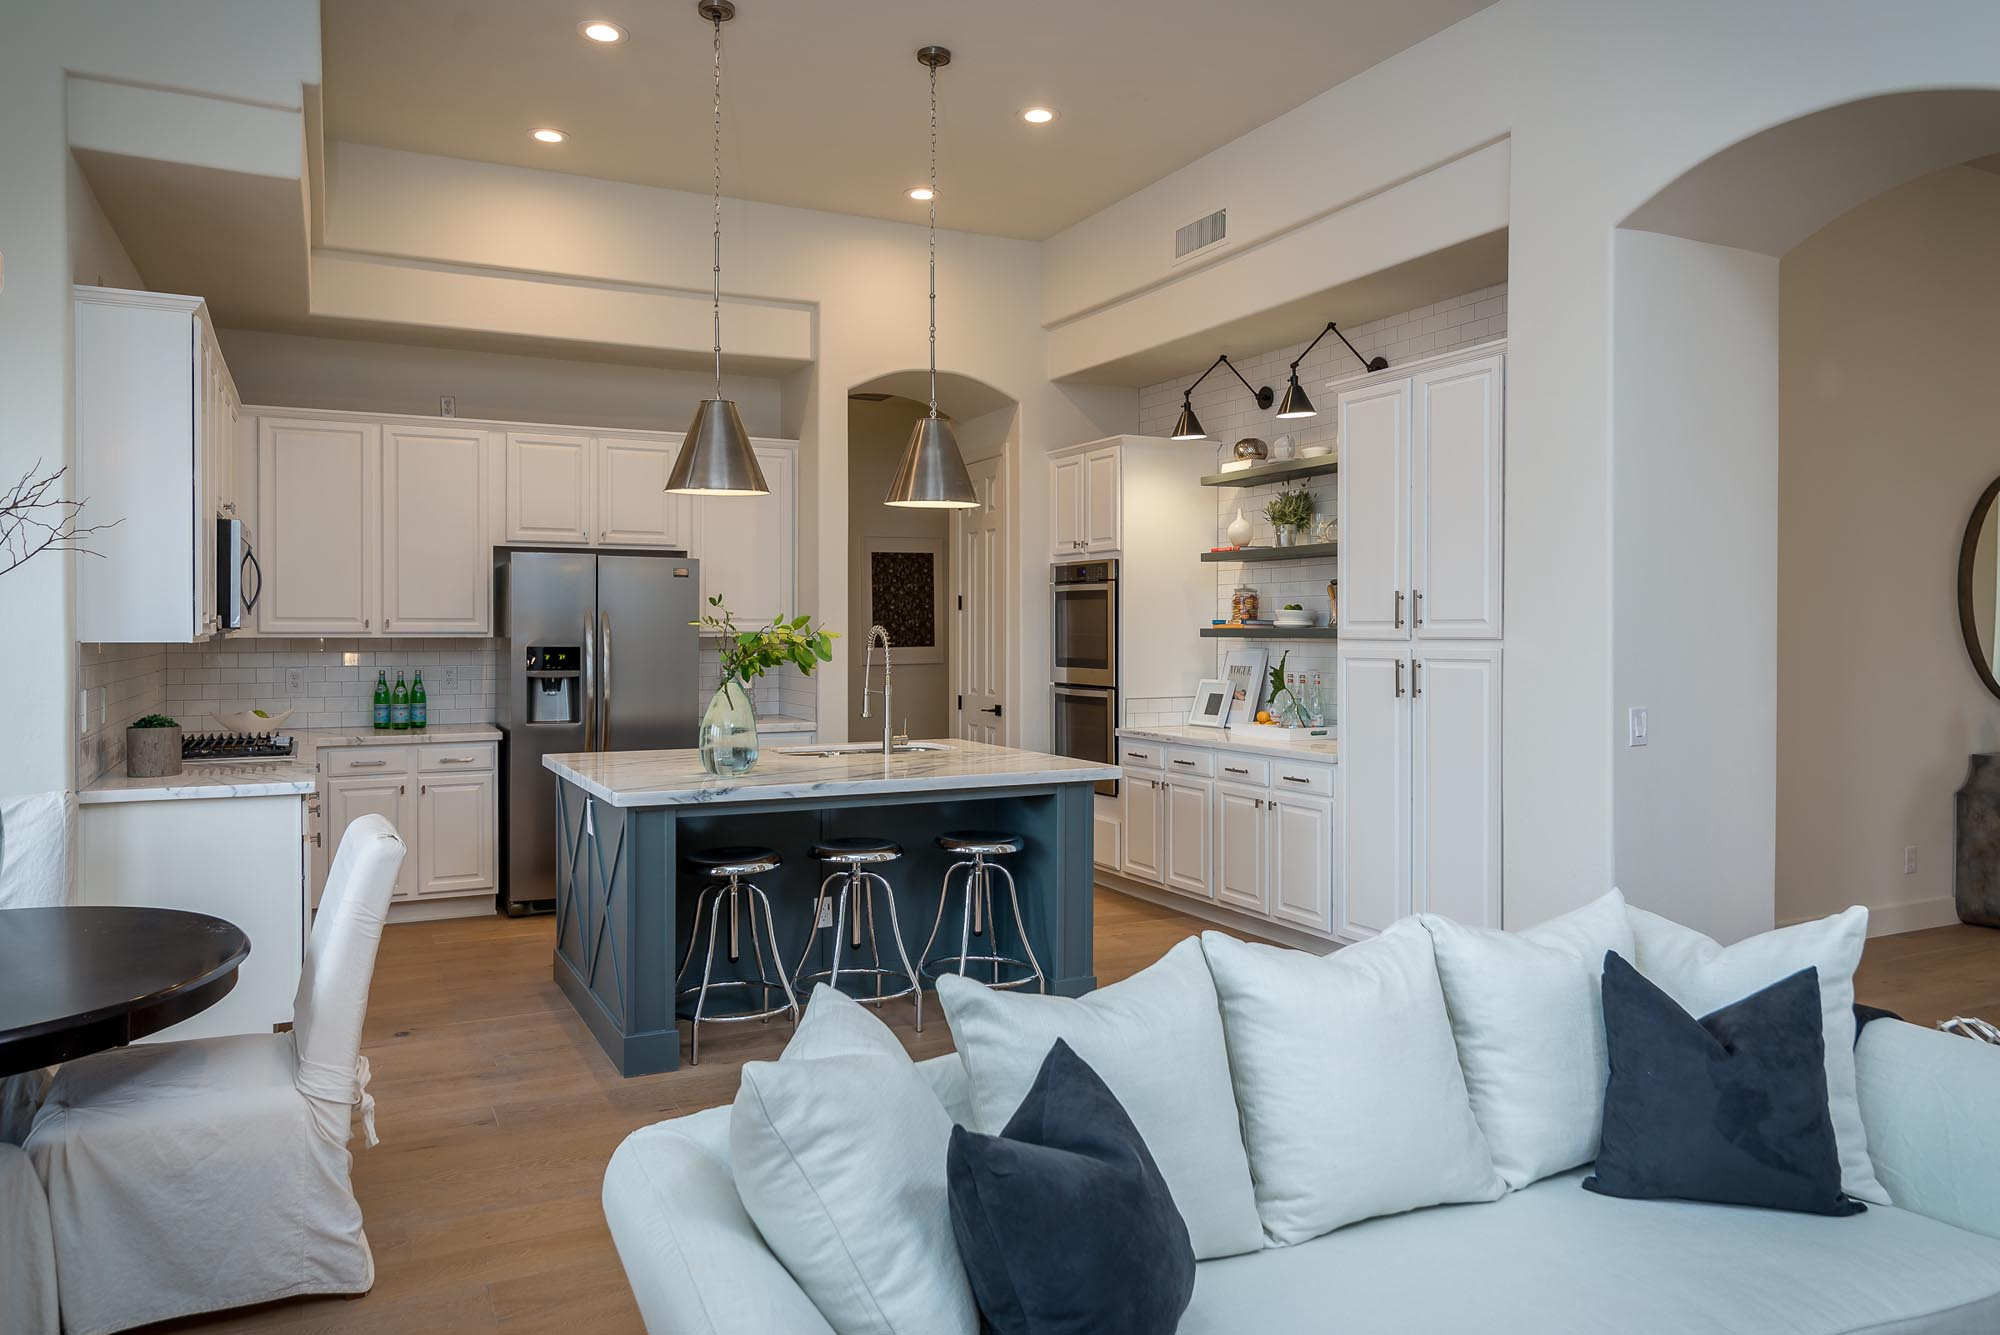 Kitchen with stainless steel appliances and hanging lights